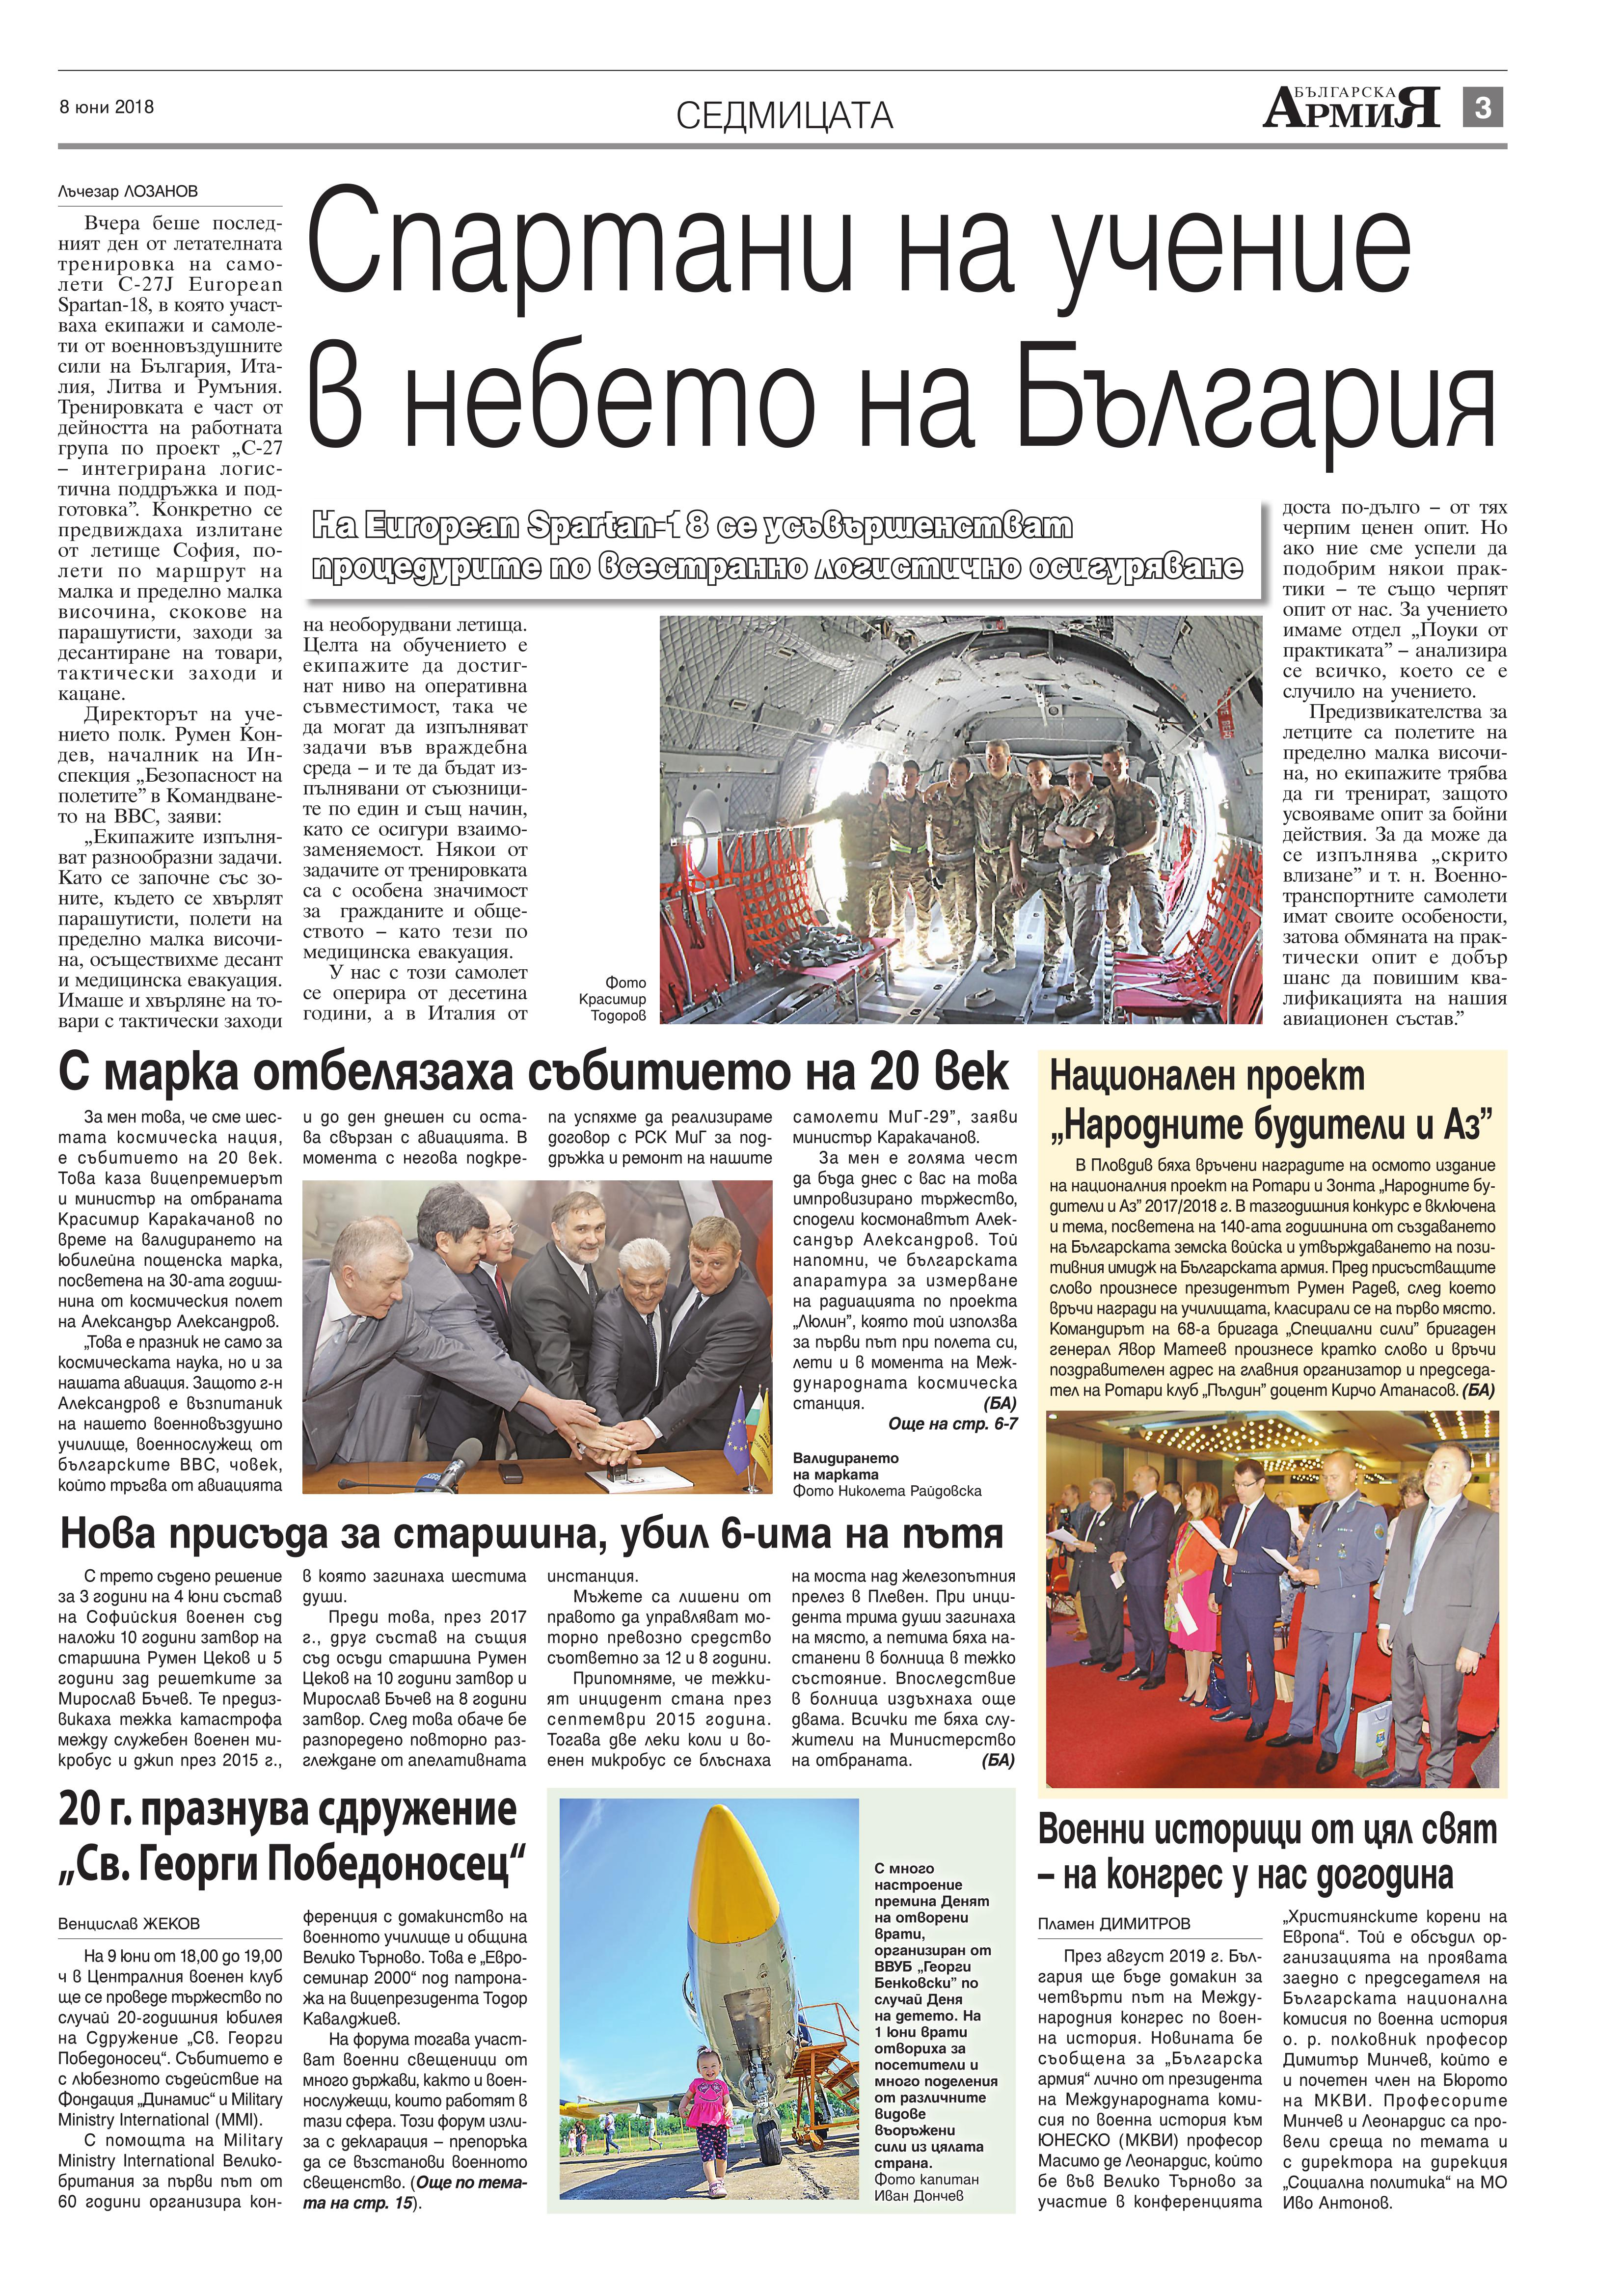 http://armymedia.bg/wp-content/uploads/2015/06/03.page1_-51.jpg